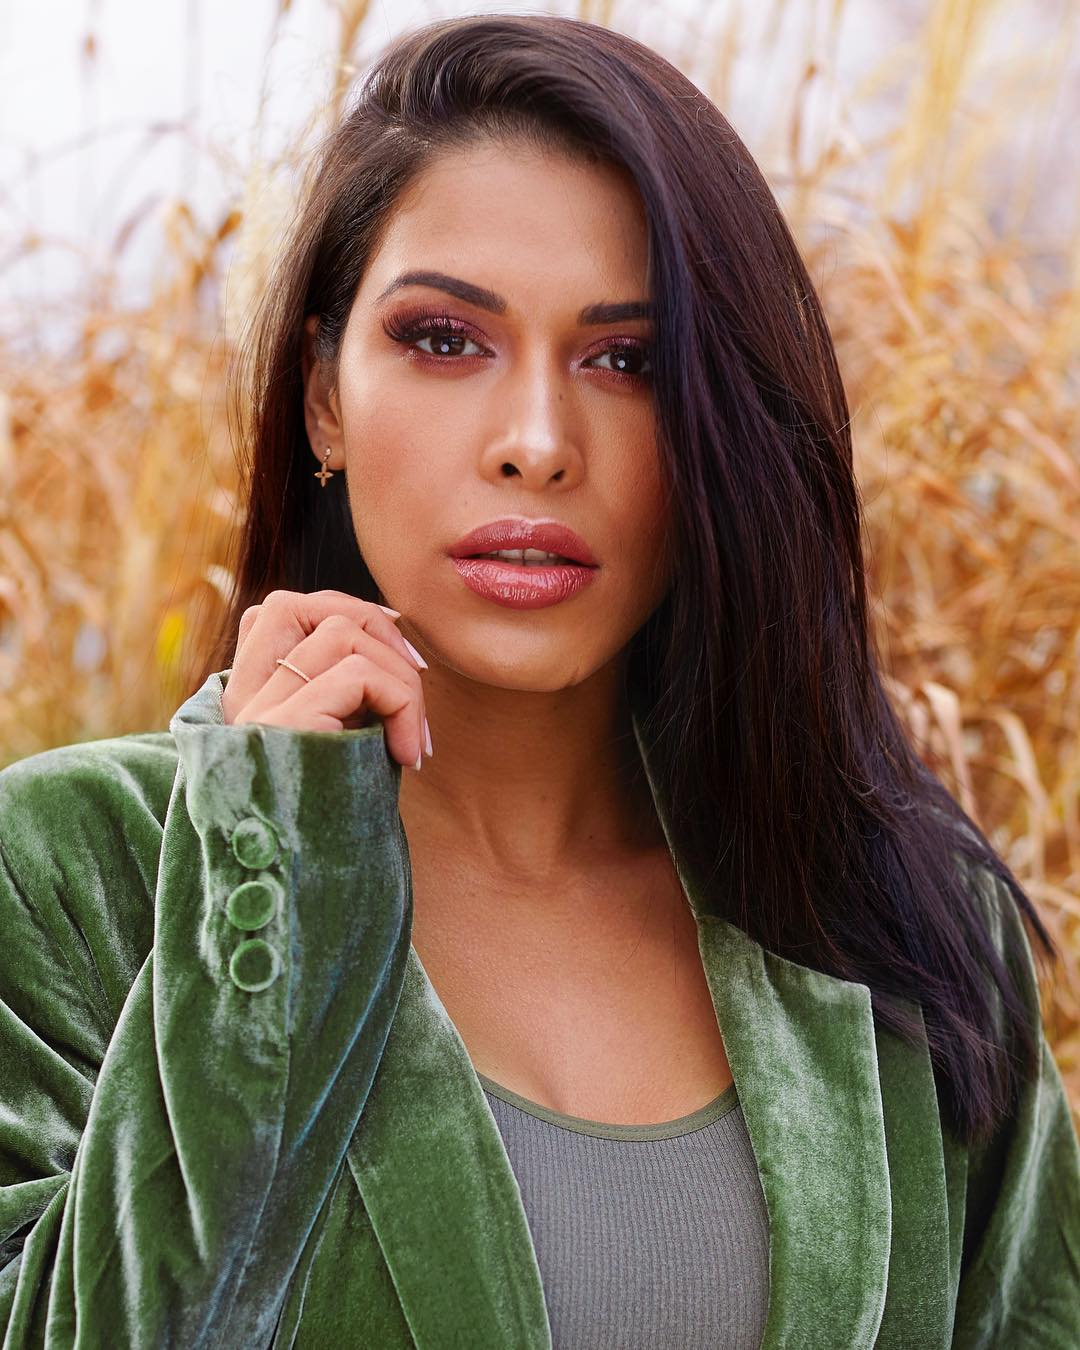 Ayem Nour is a model that appeared in The Game ft Chris Brown Tyga Wiz Khalifa  Lil Wayne Celebration